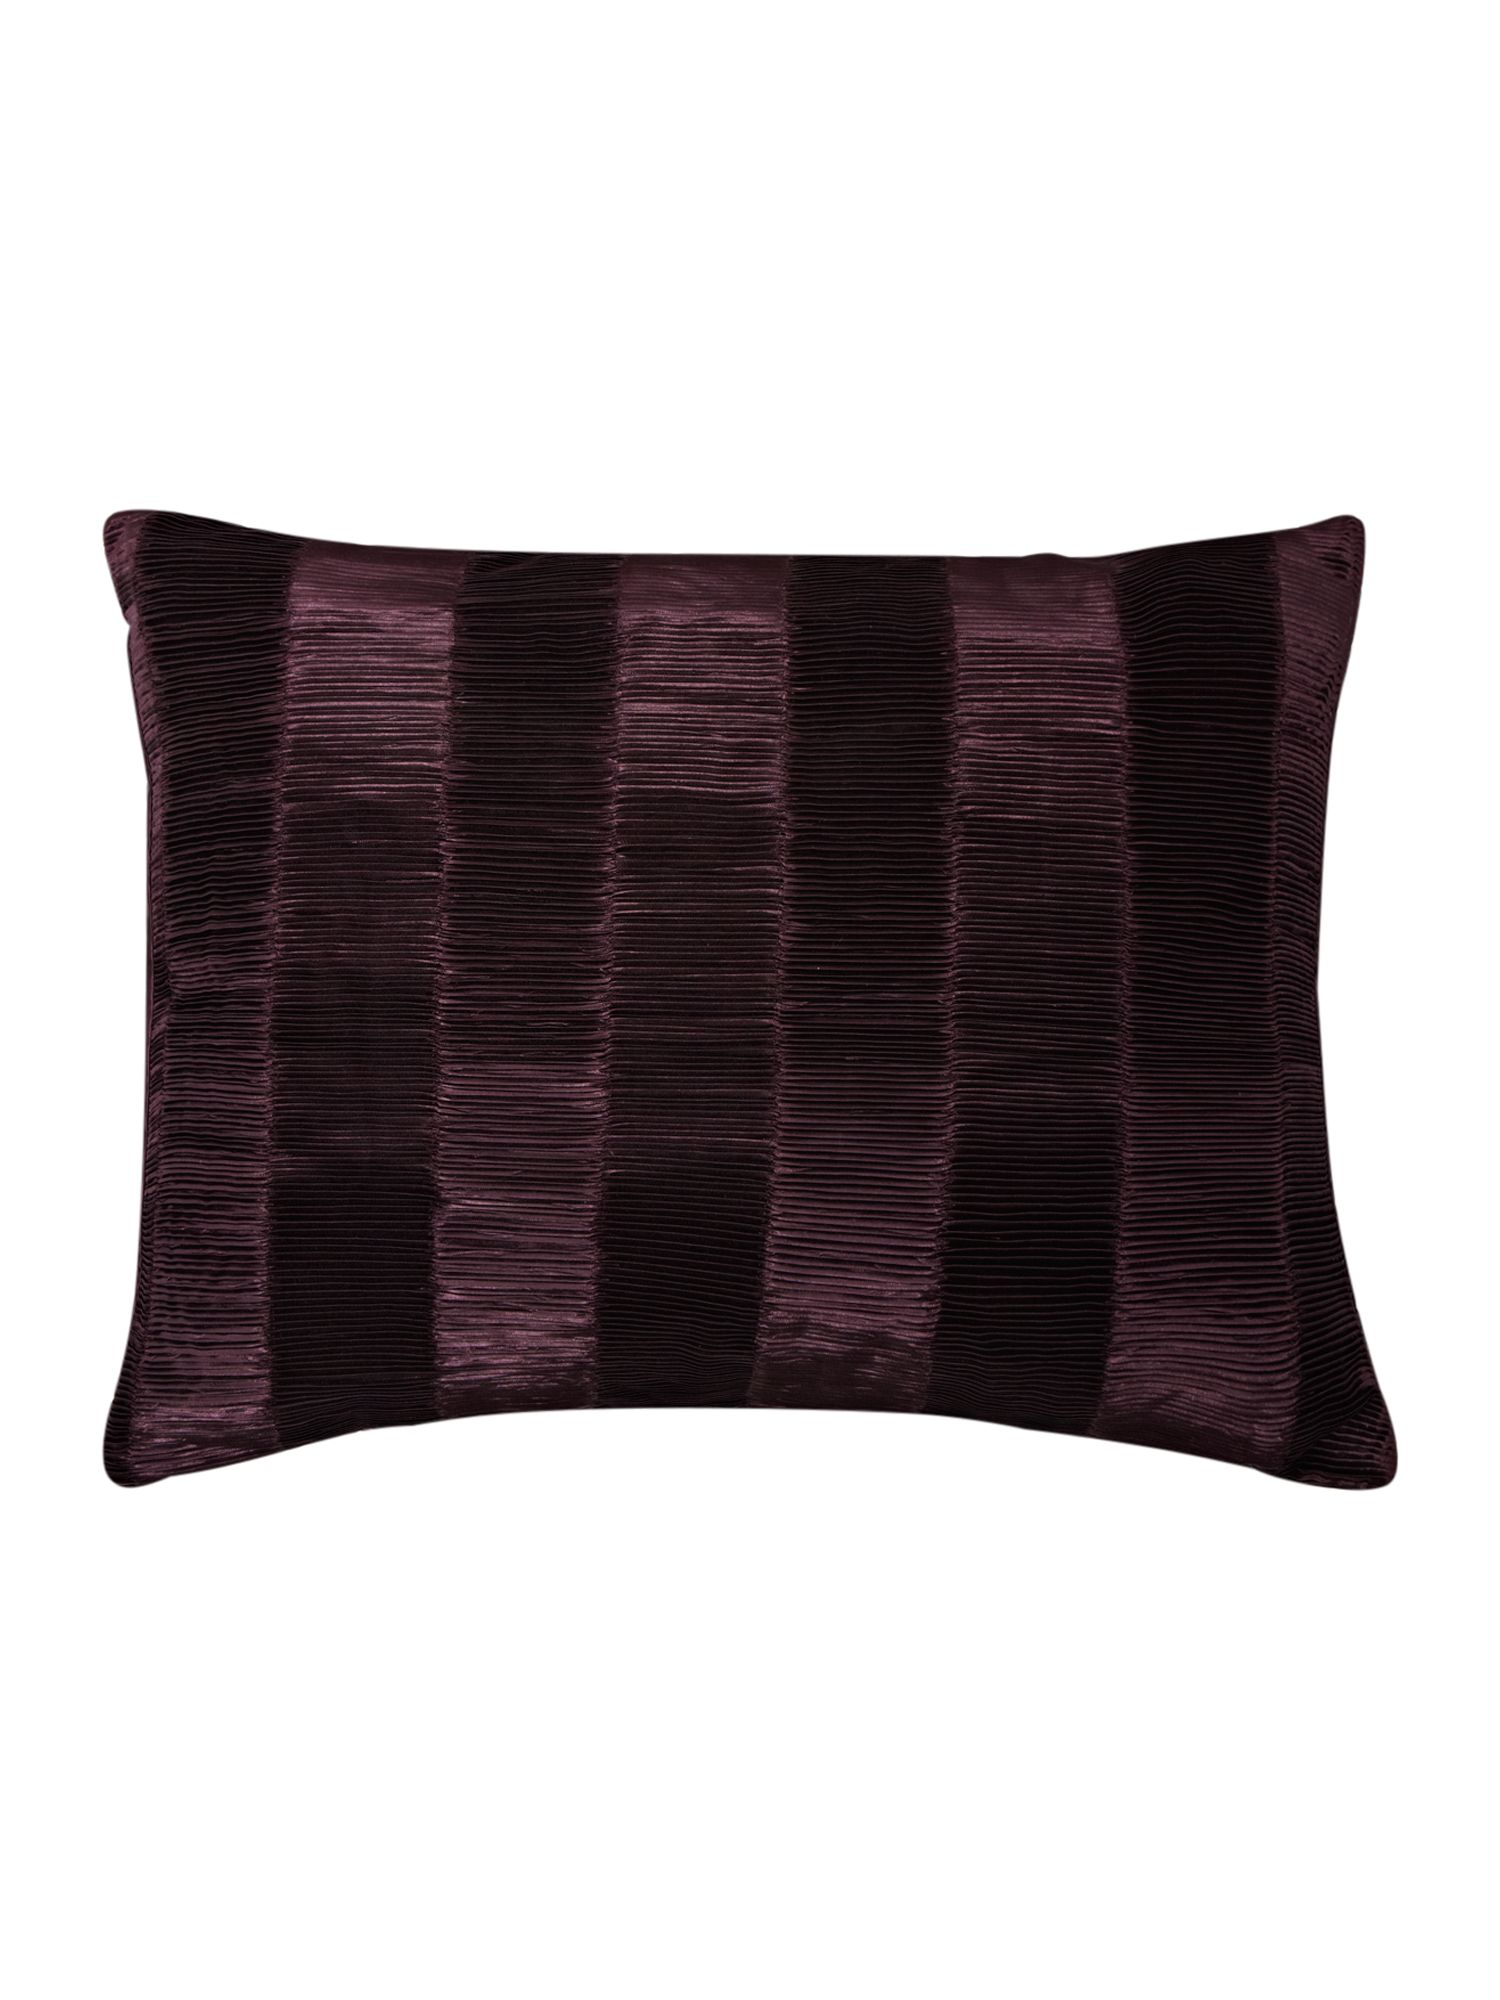 Heat pleat cushion in plum